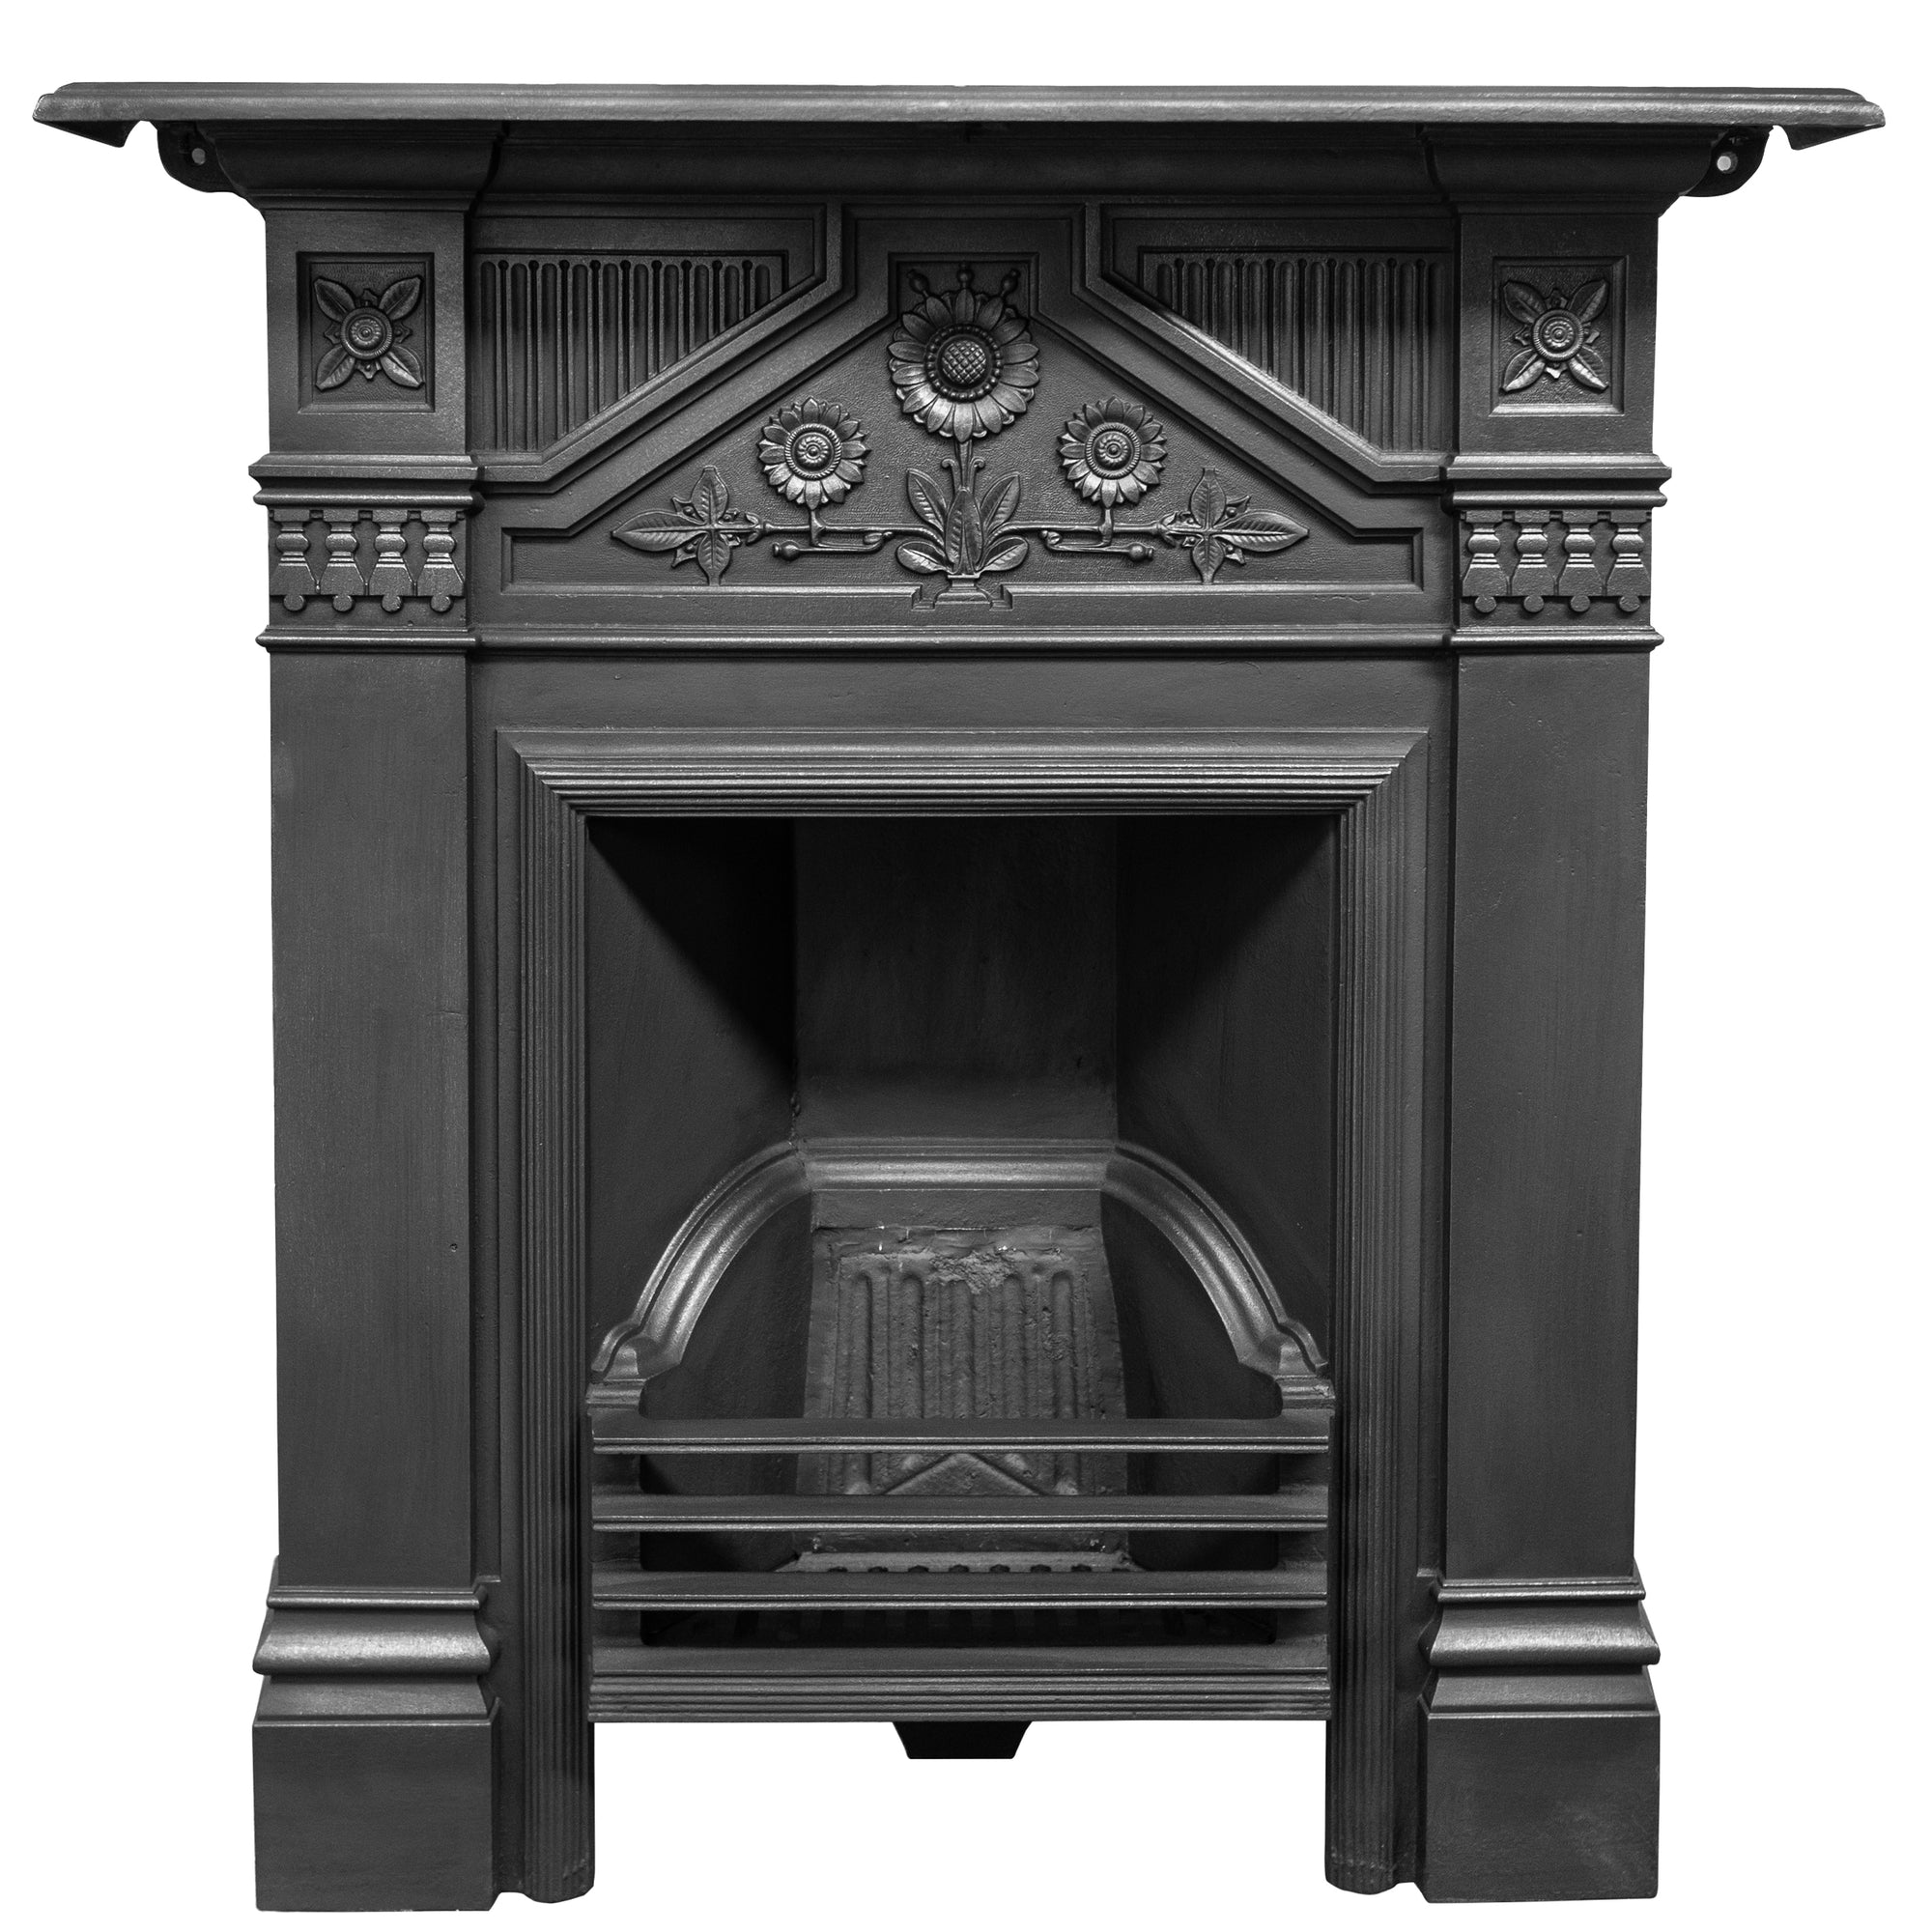 Antique Late Victorian, Early Edwardian Cast Iron Combination Fireplace - The Architectural Forum